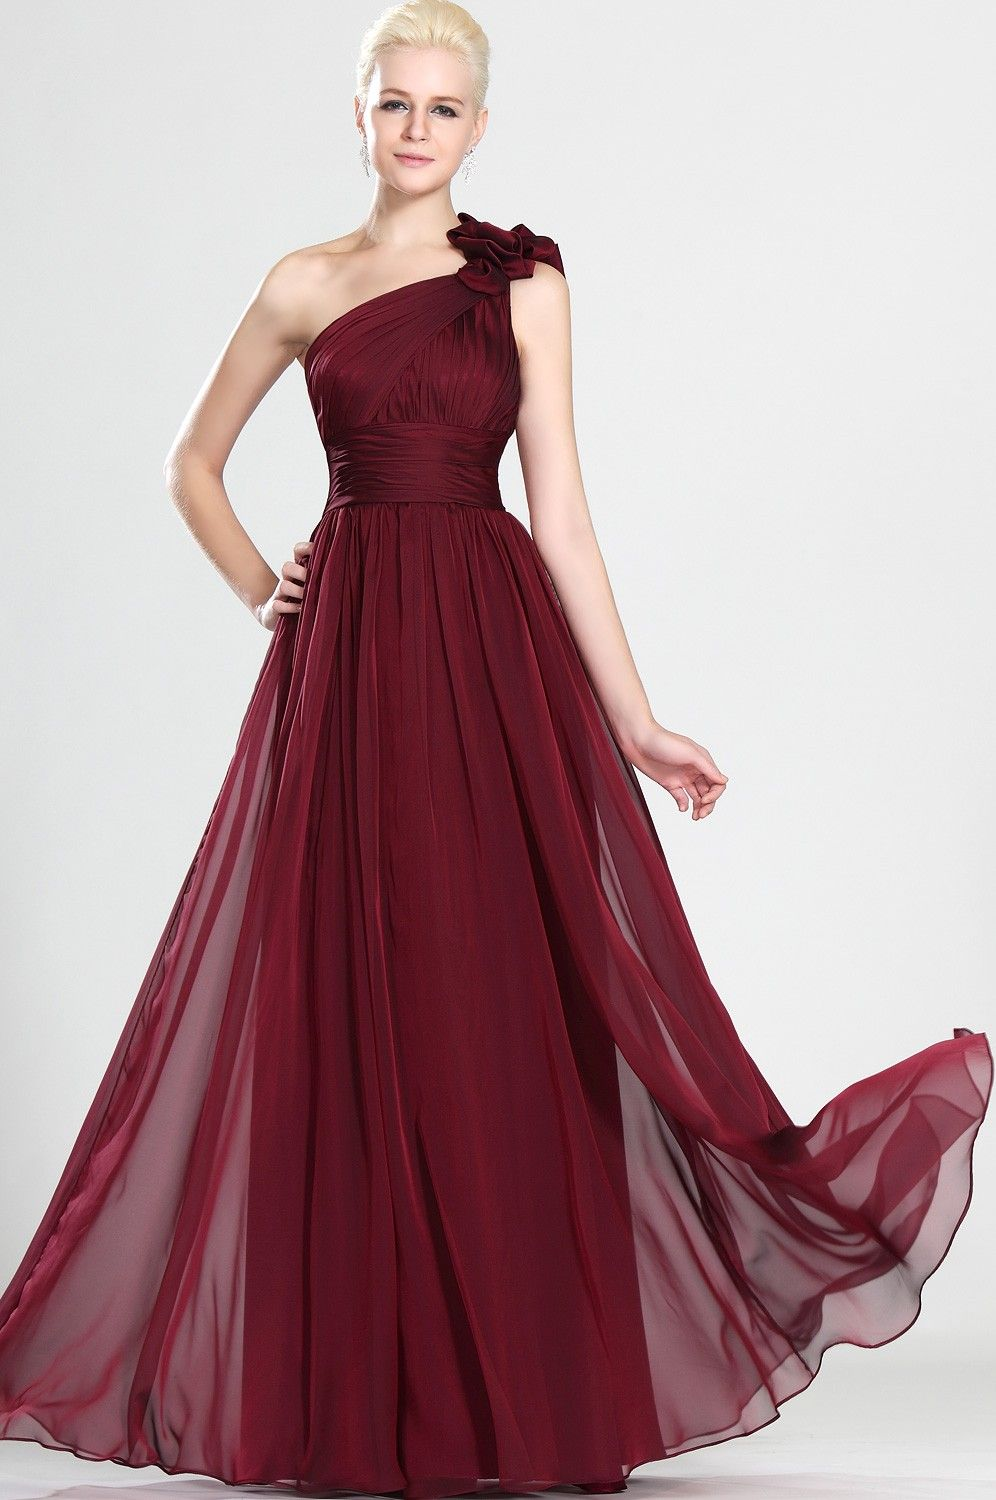 Nice A Line Princess Floor Length One Shoulder Chiffon Dress Market Price Au 524 12 Missy 121 65